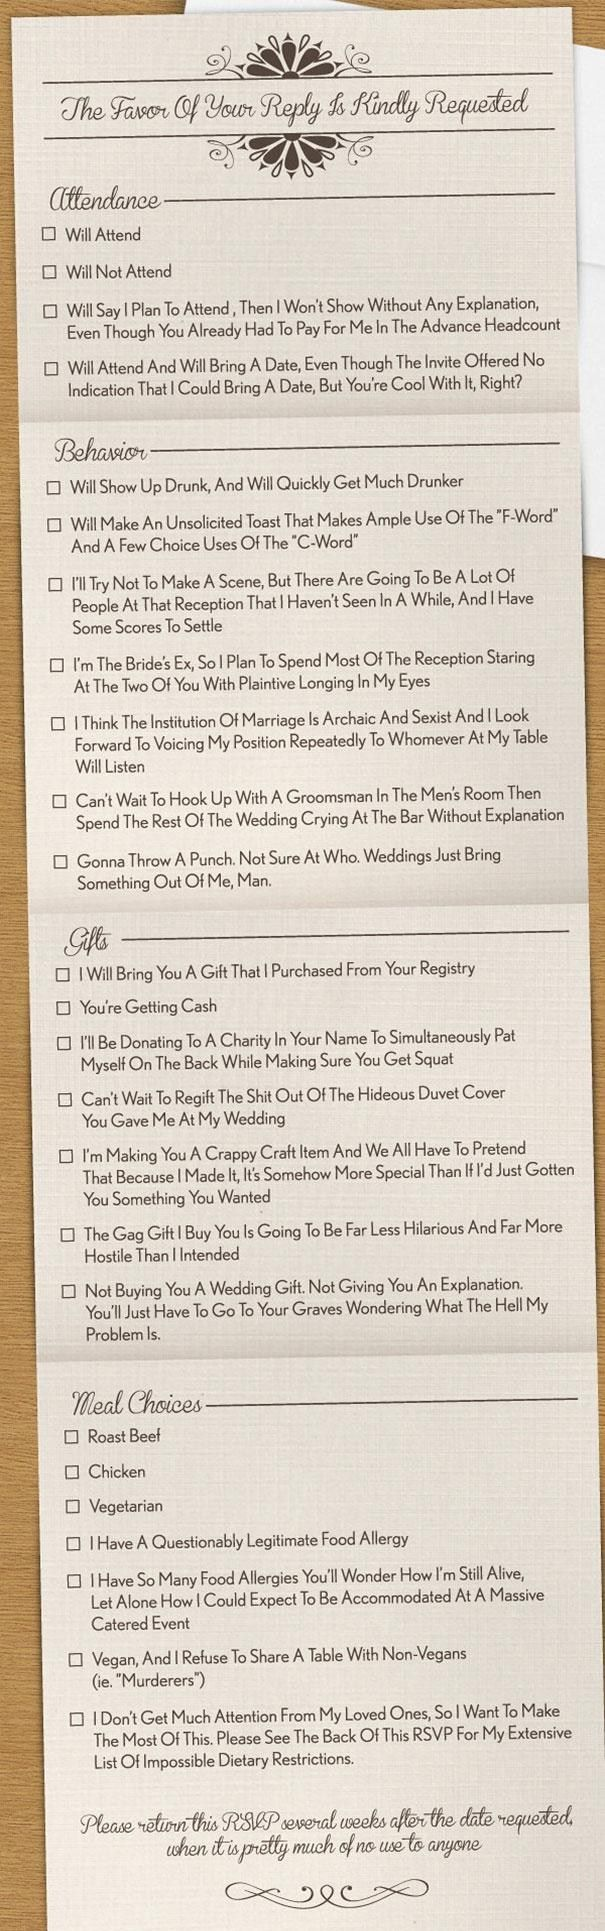 Hilarious!!! For those of you who lived through the ordeals of wedding RSVPs (and the reality of them) or for those about to plan a wedding. Enjoy.